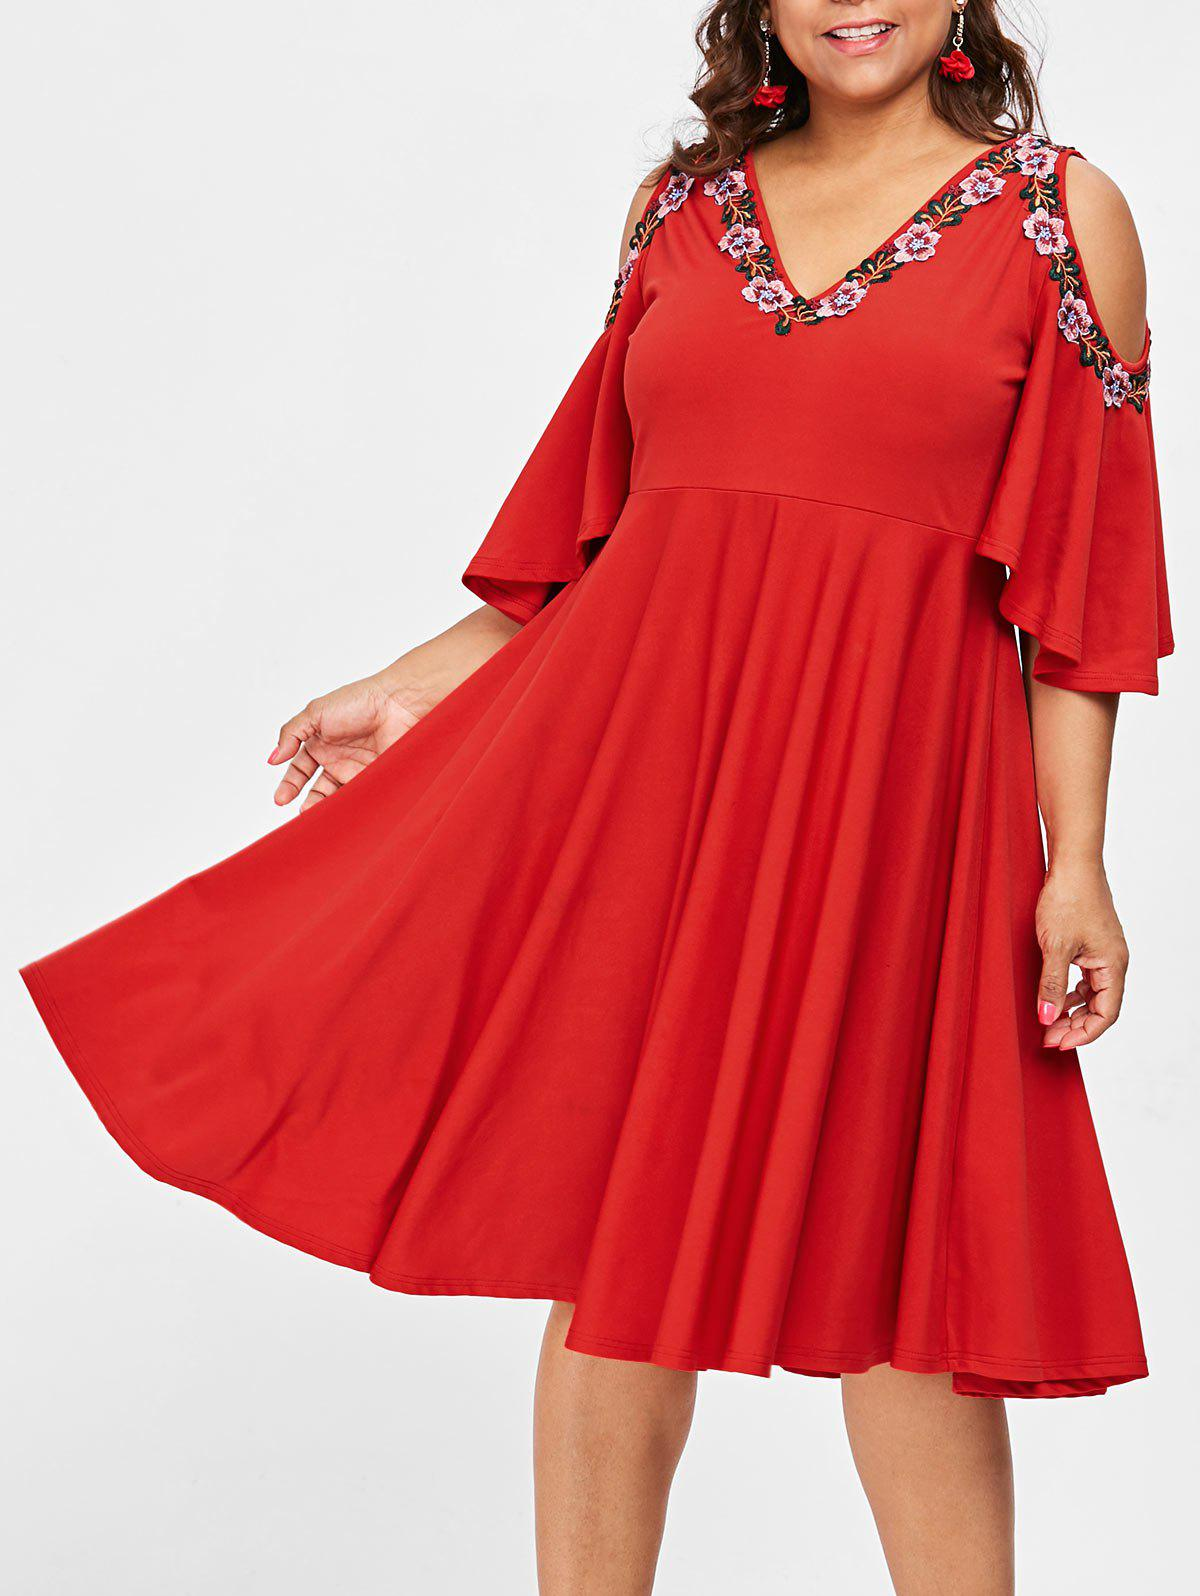 36% OFF] Plus Size Embroidered Cold Shoulder Swing Dress | Rosegal